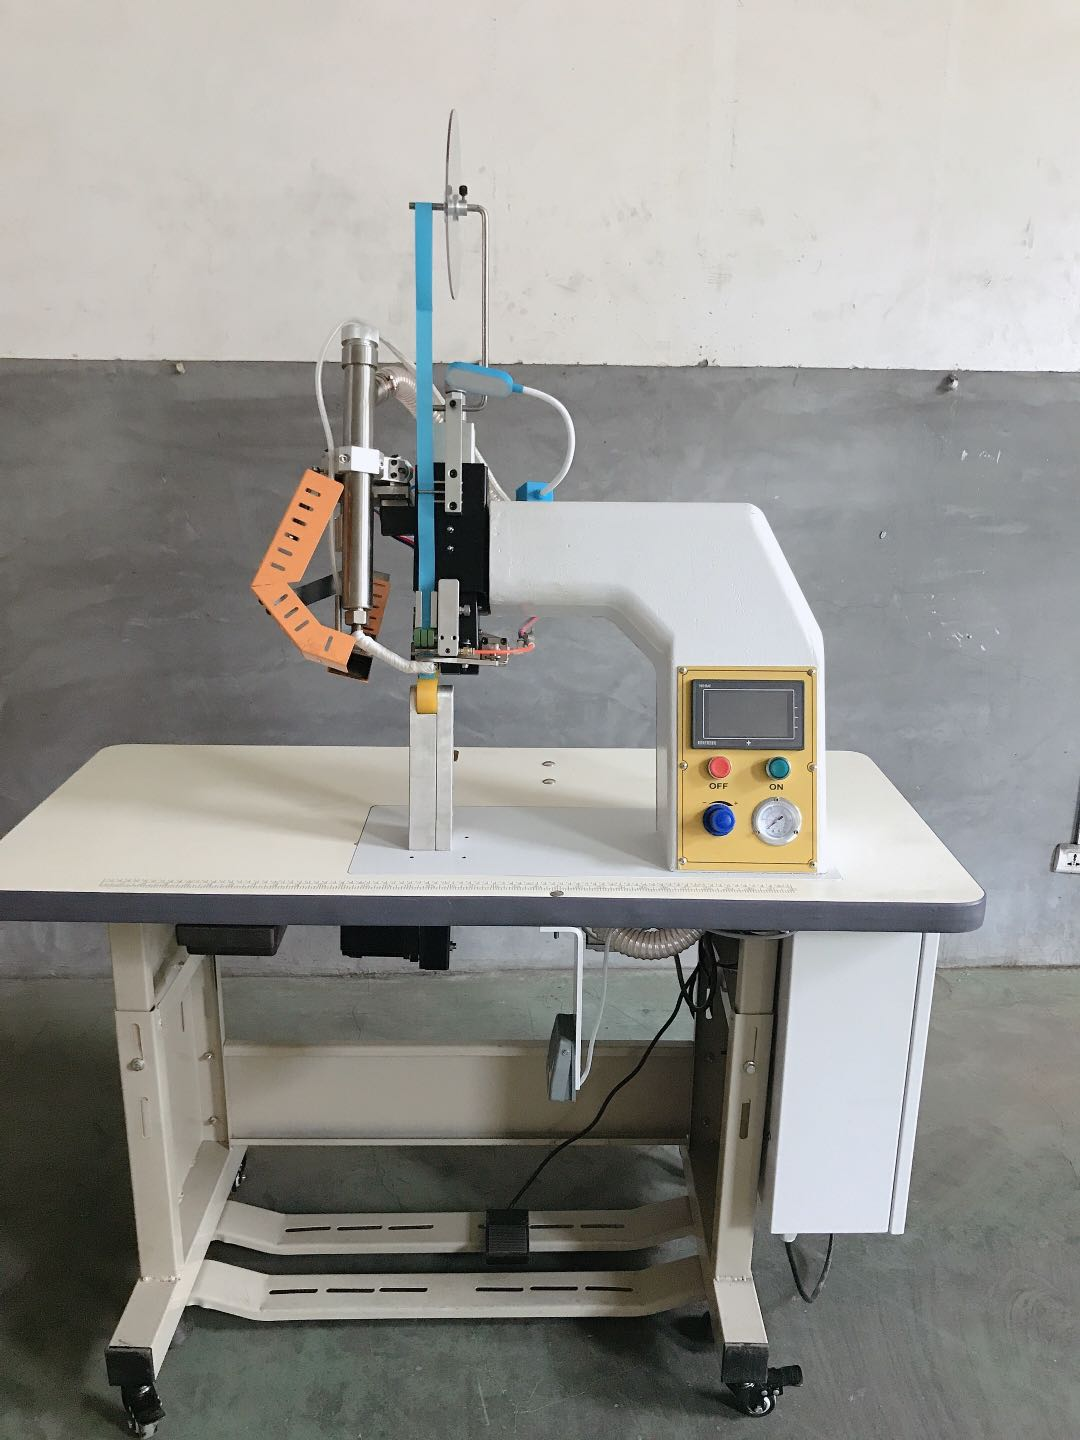 [protective clothing hot sealing machine] good quality, fast glue pressing speed, hurry to arrange!